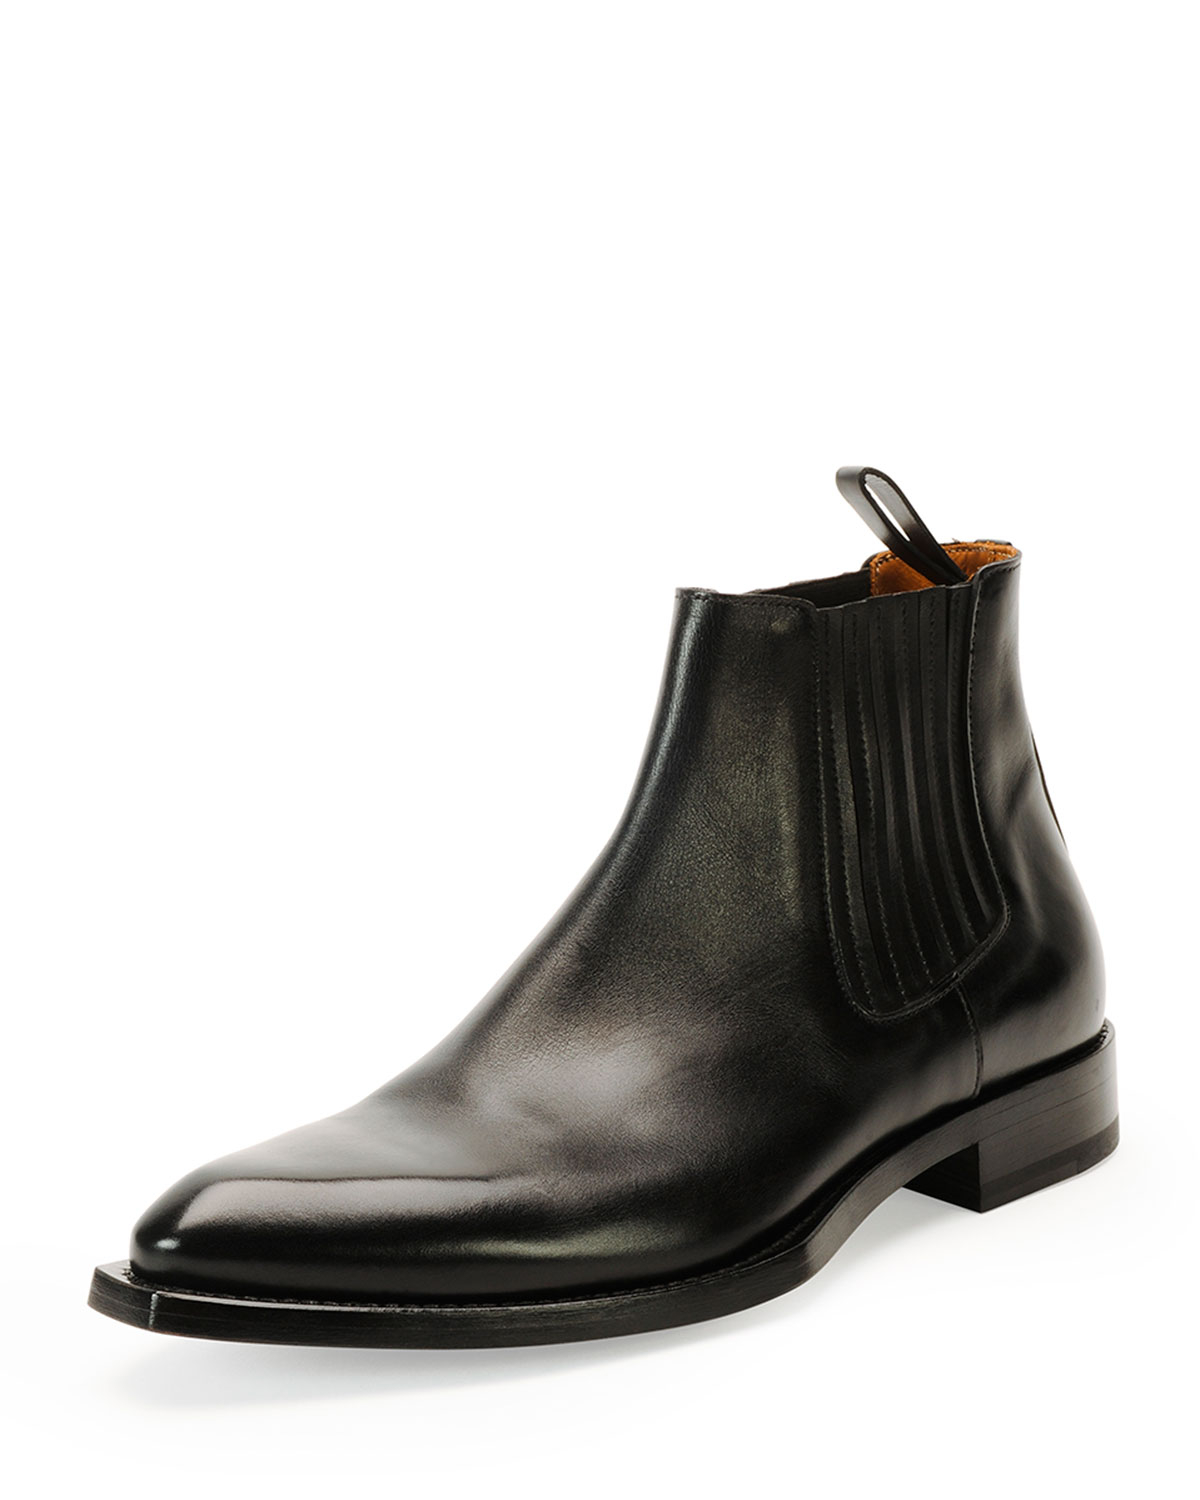 givenchy norberto leather chelsea boot in black for lyst